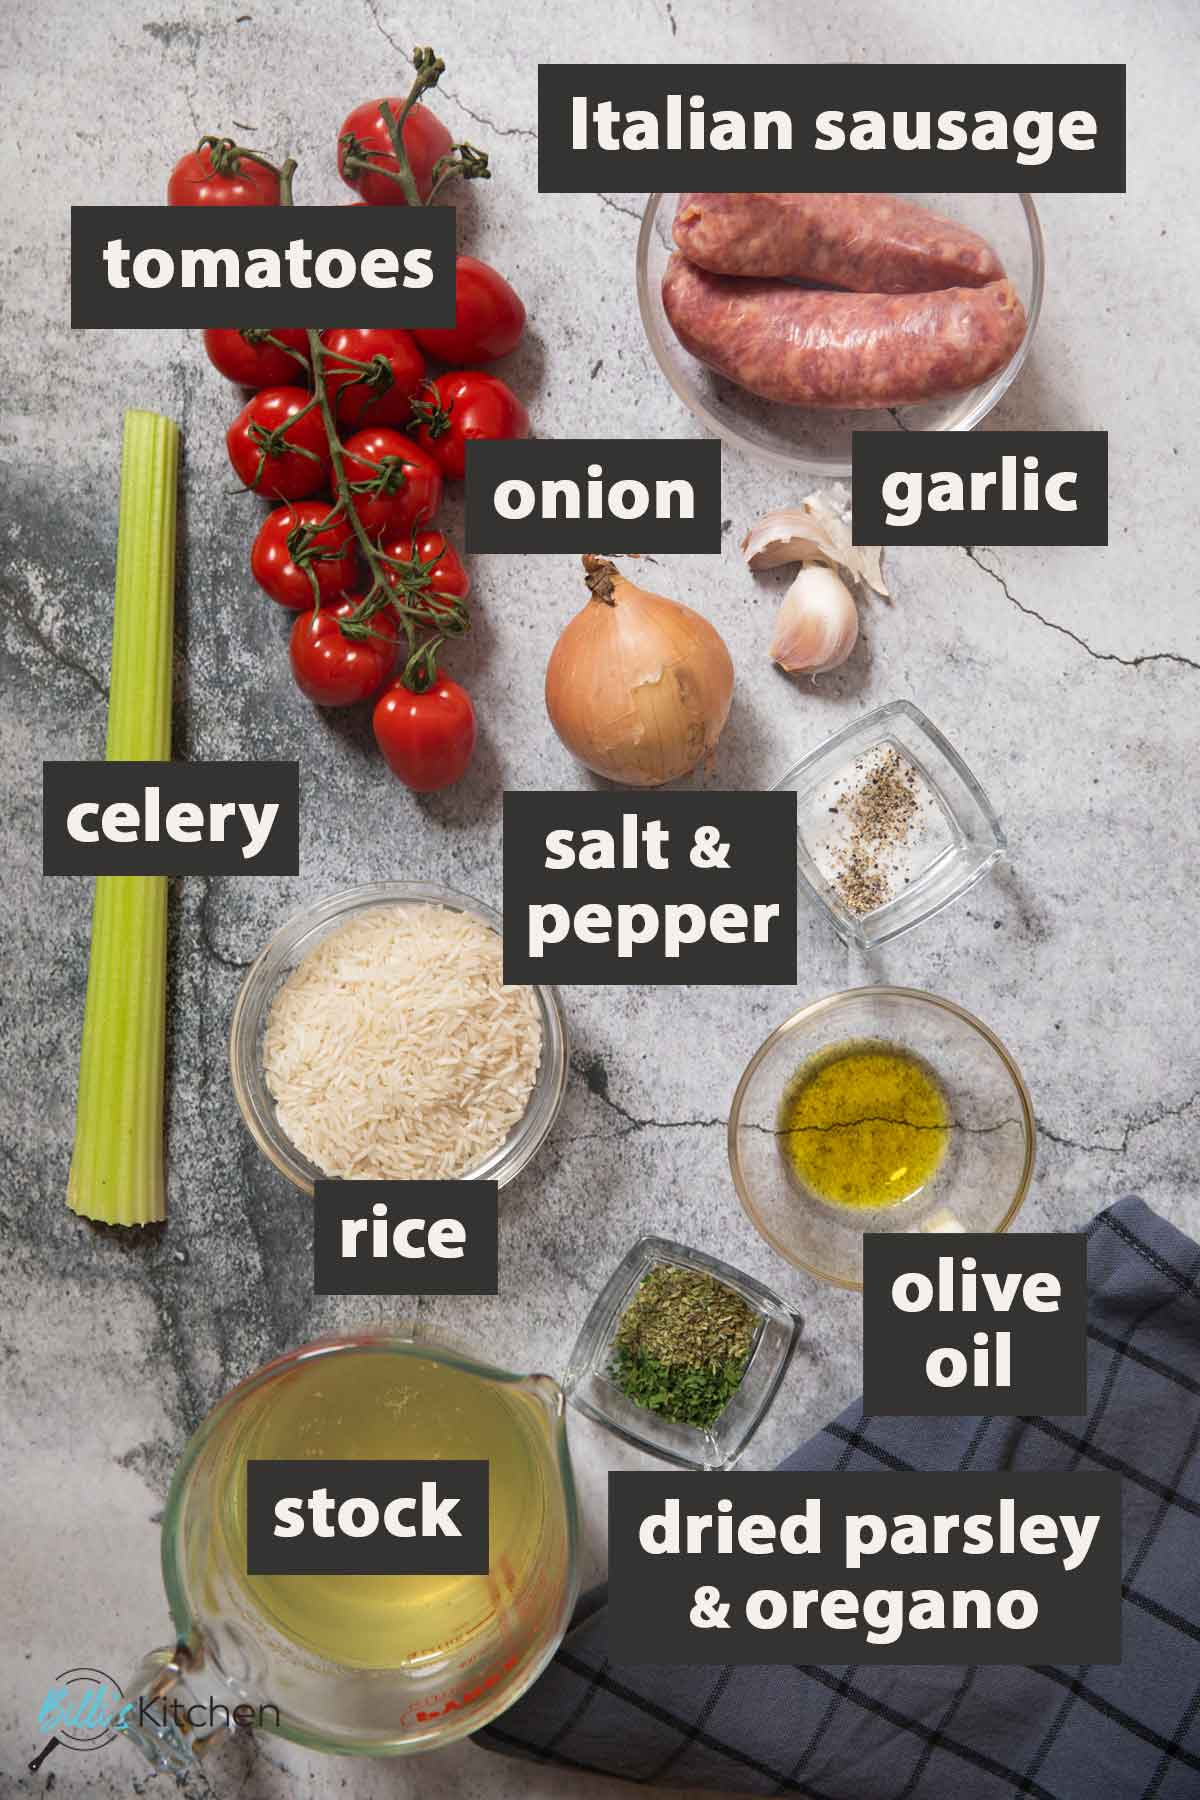 An image showing all the ingredients you need to prepare sausage and rice at home.